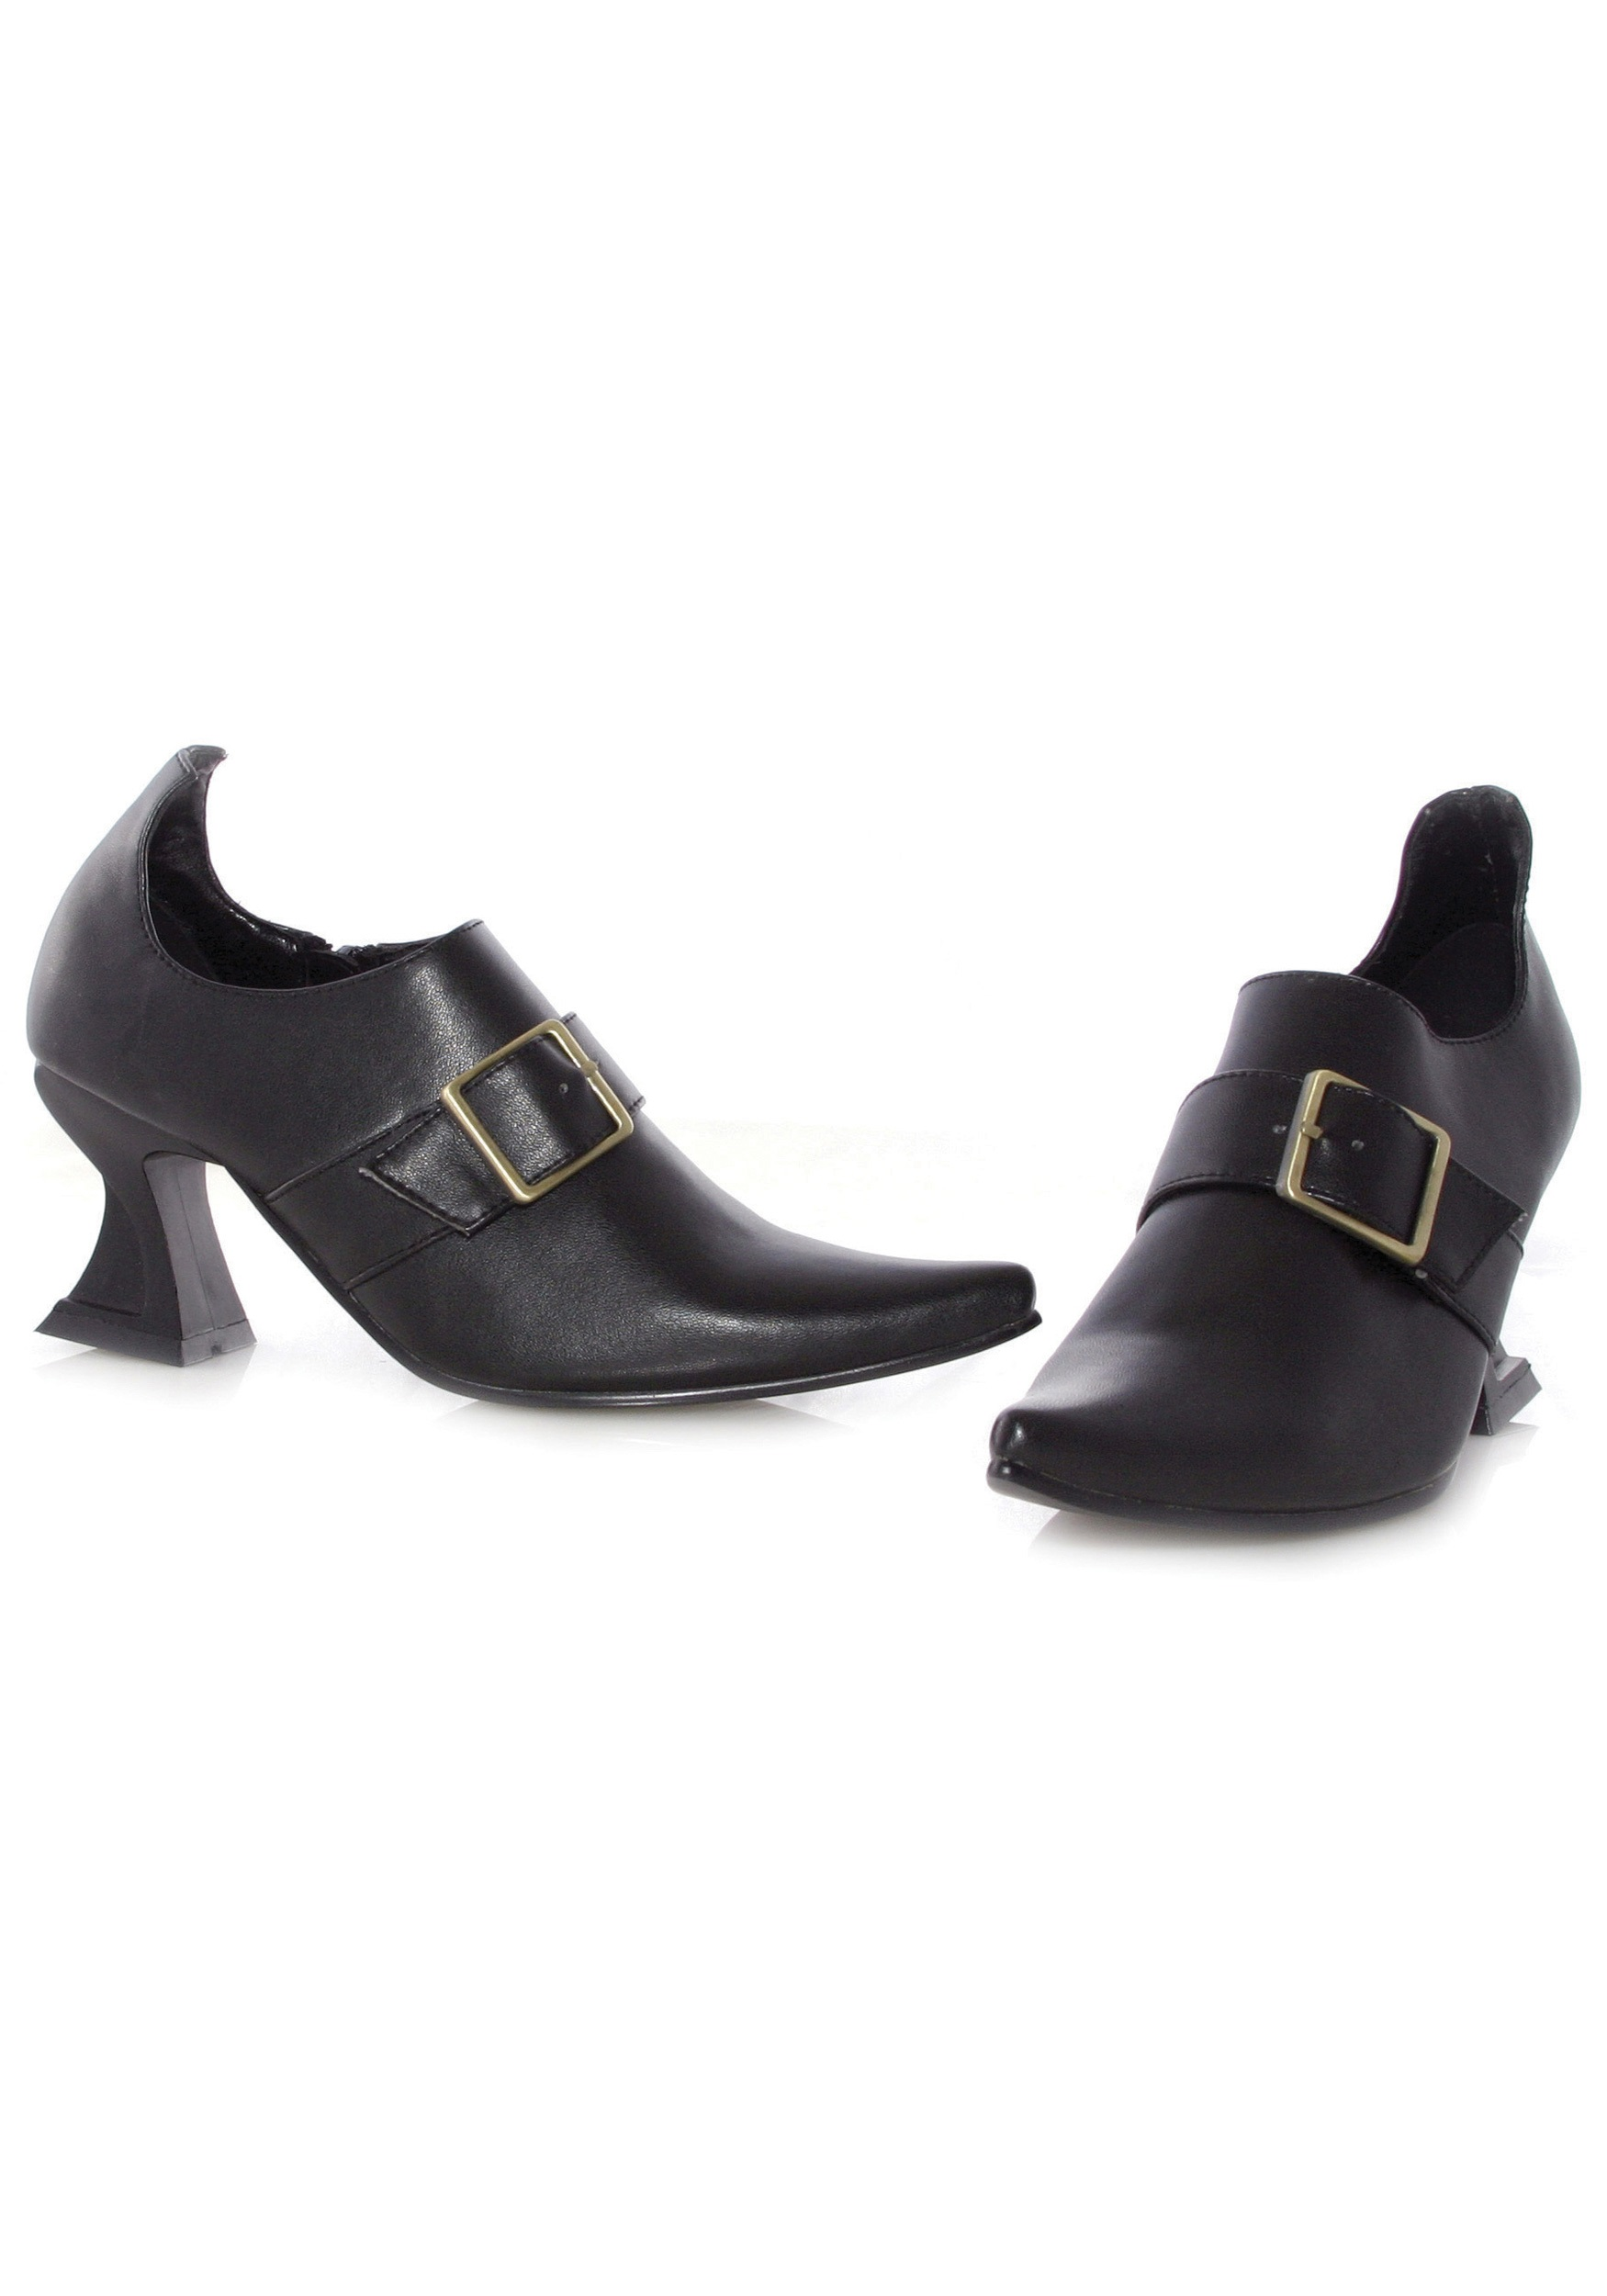 Black Munchkin Shoes Girls Black Witch Shoes$22.99